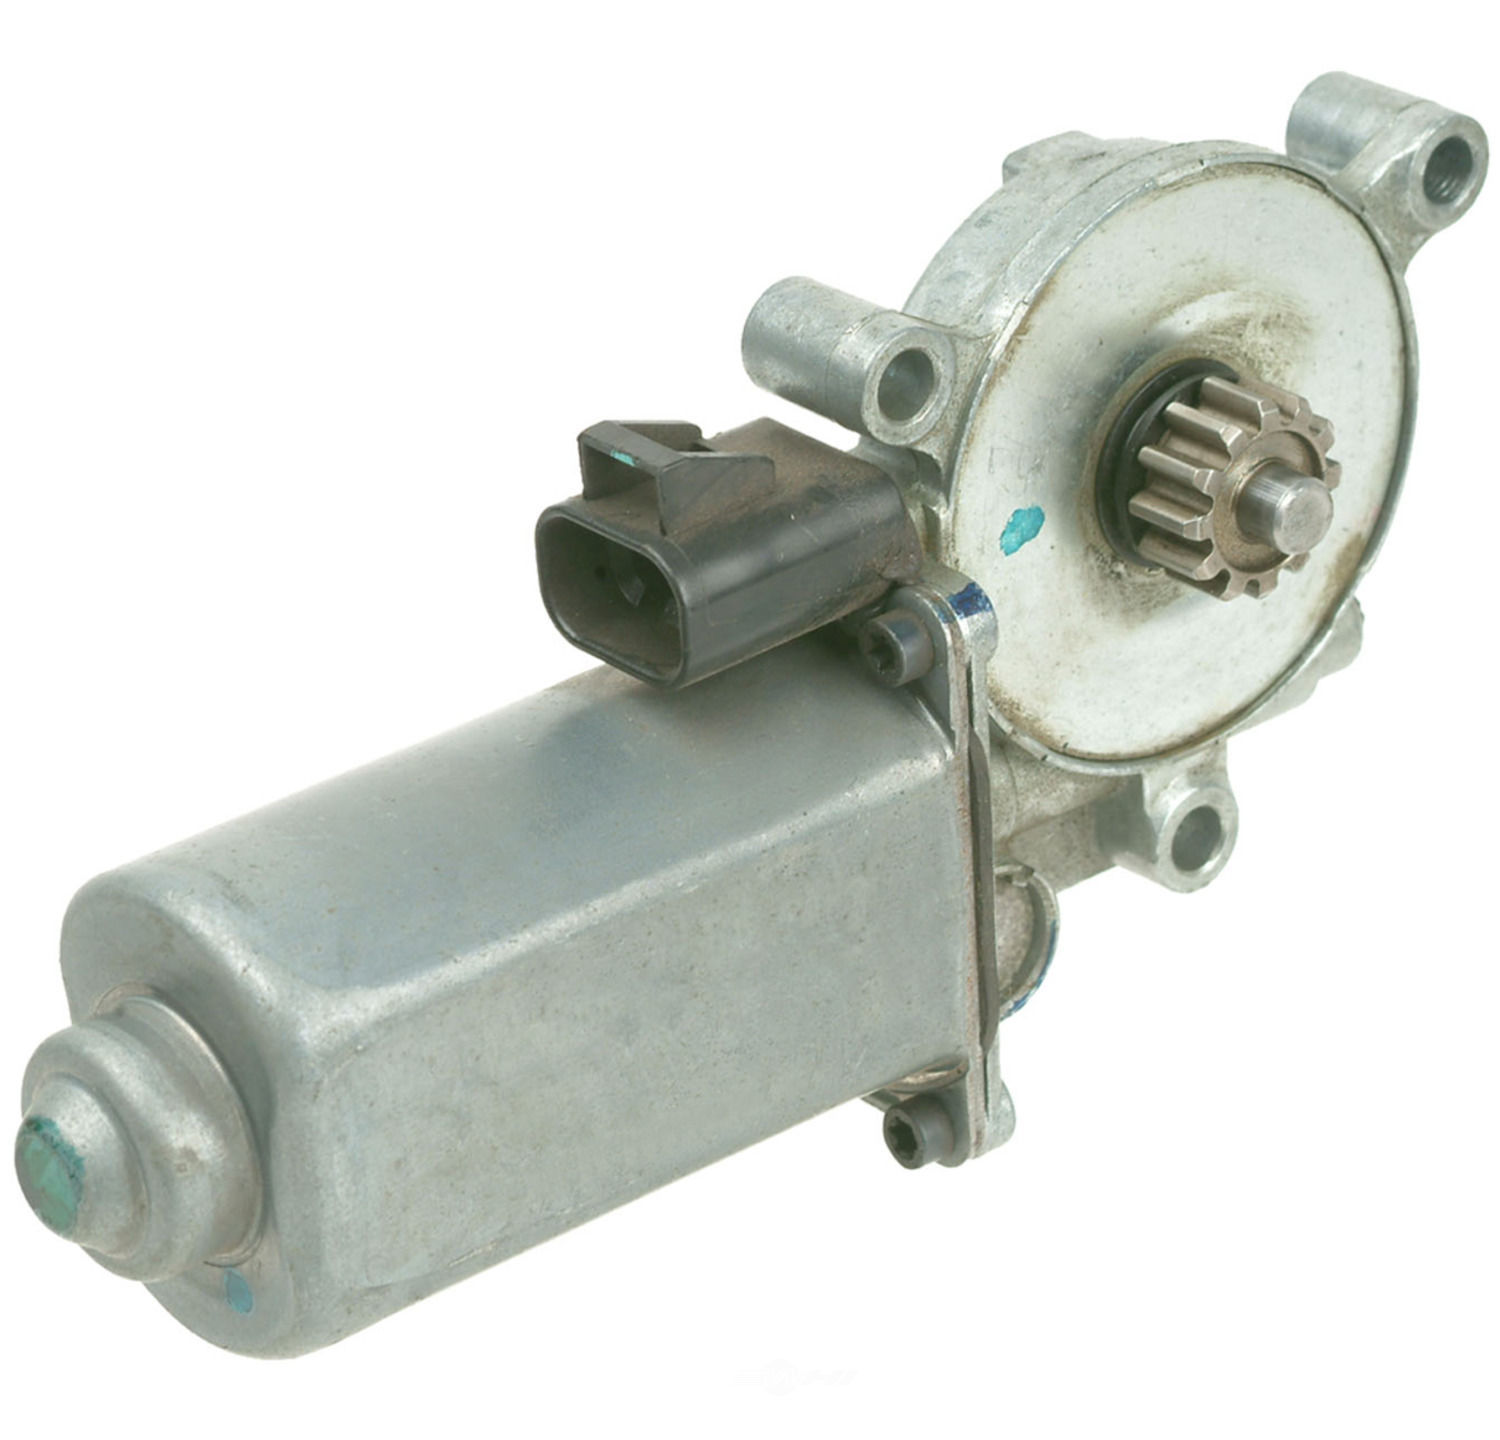 CARDONE REMAN - Window Lift Motor - A1C 42-199